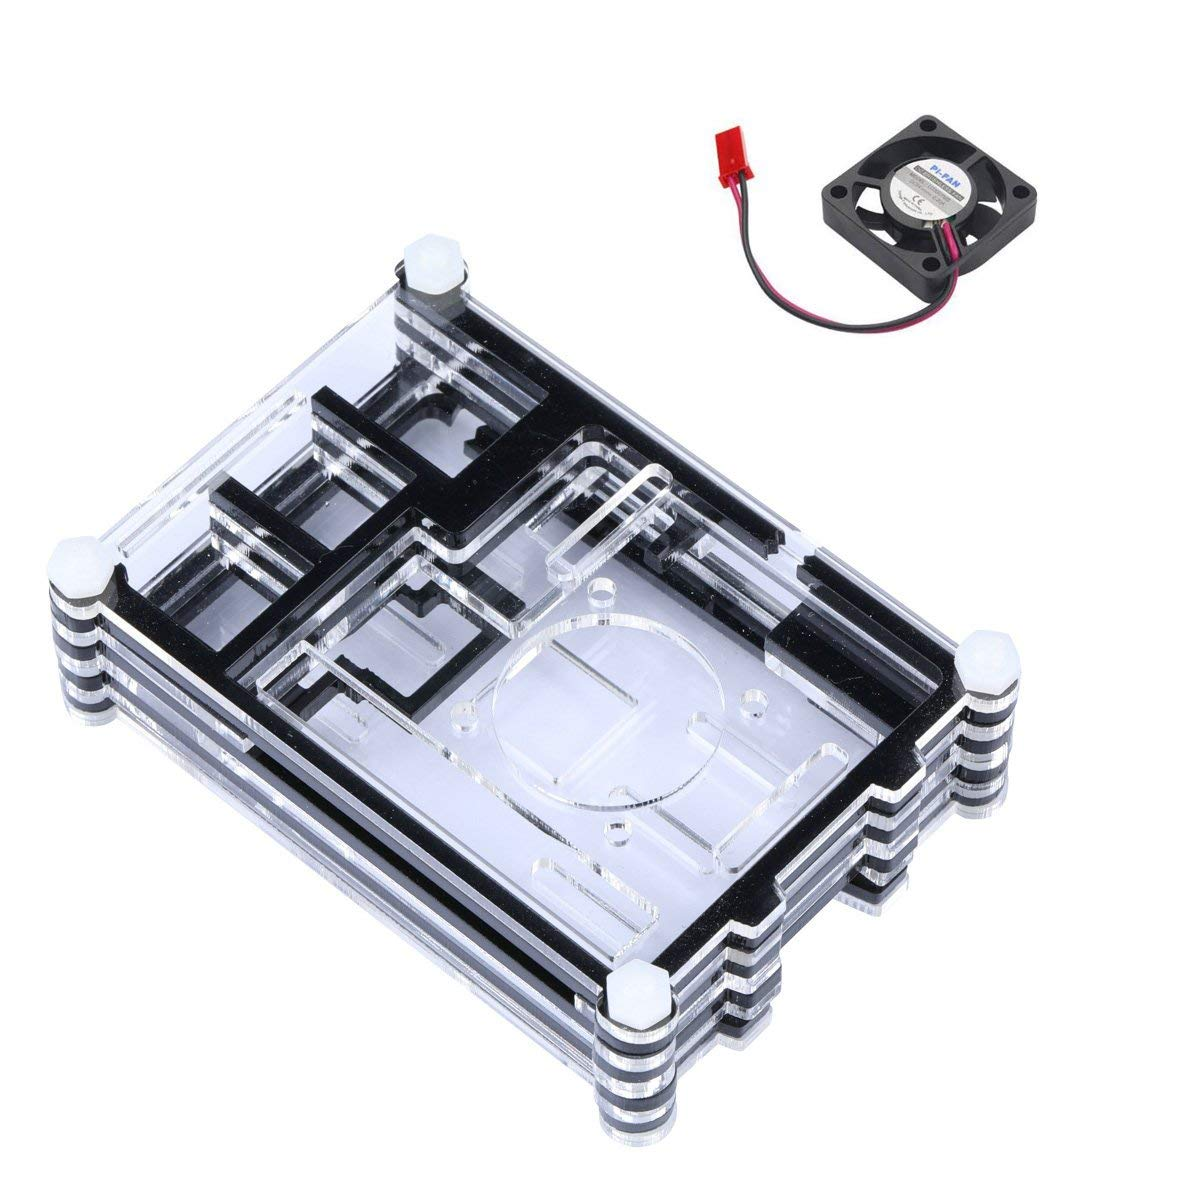 Raspberry Pi 3 Acrylic Case with Cooling fan RPI 3 Shell with Mini Fan Support Raspberry Pi 2